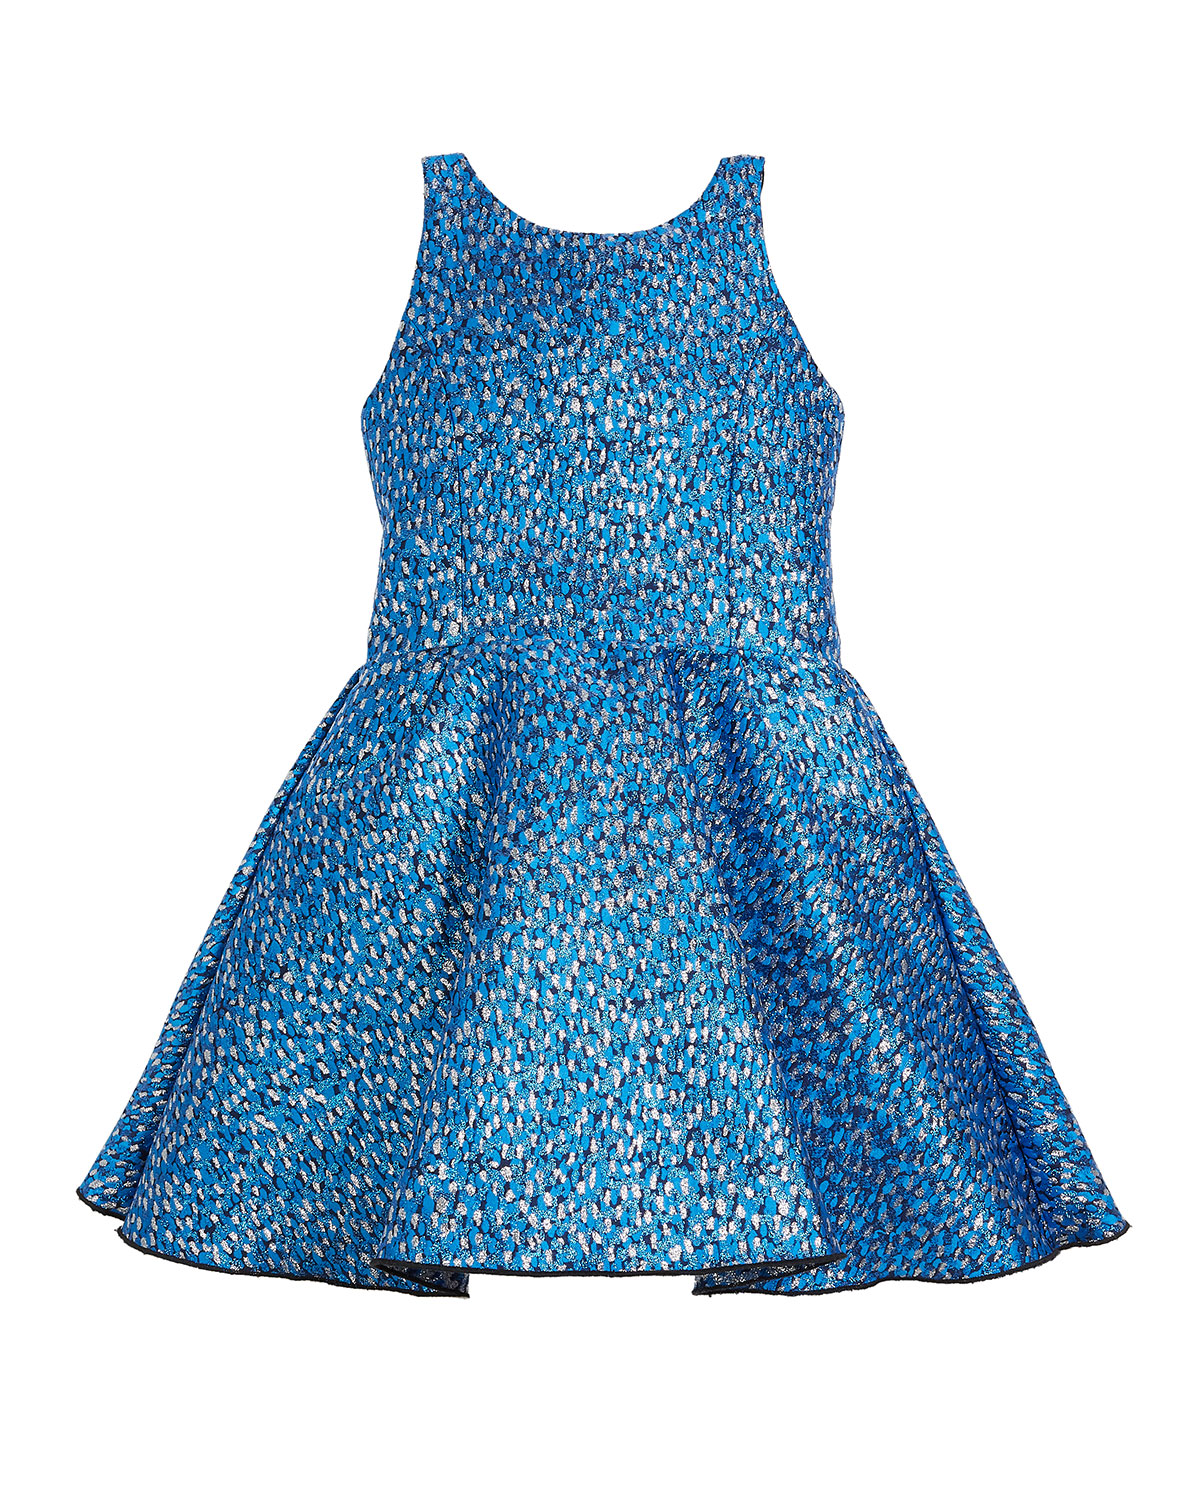 Rea Abstract Brocade T-Back Swing Dress, Size 7-16